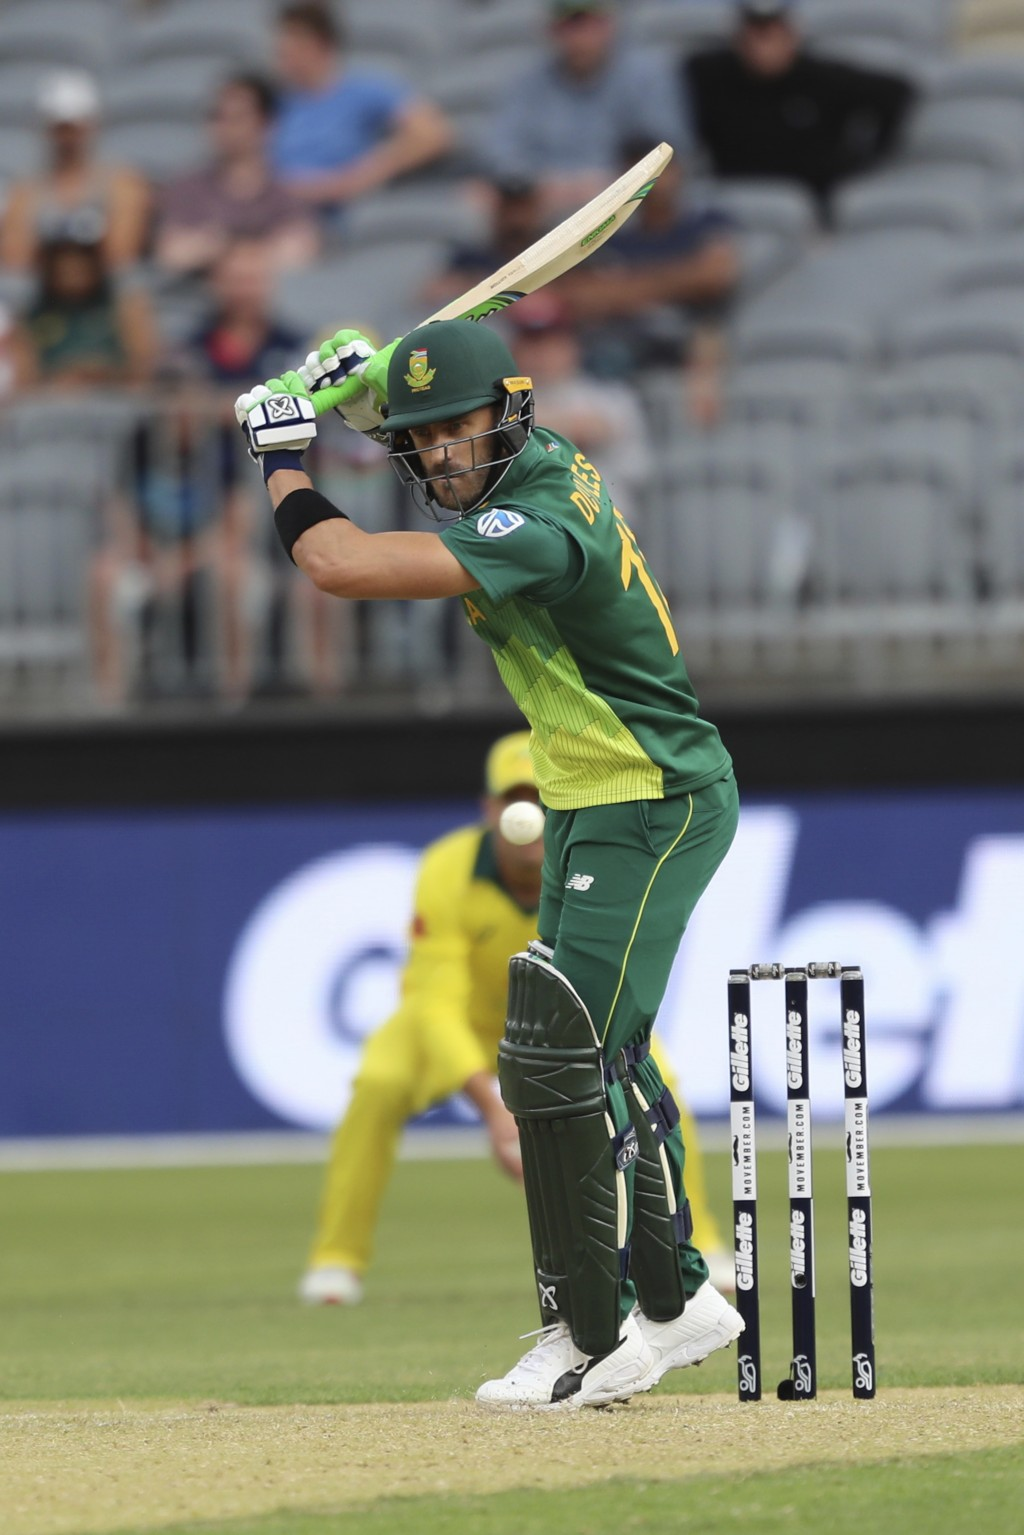 South Africa's Faf du Plessis plays a shot from Australia's Josh Hazlewood during their one-day international cricket match in Perth, Sunday, Nov. 4,